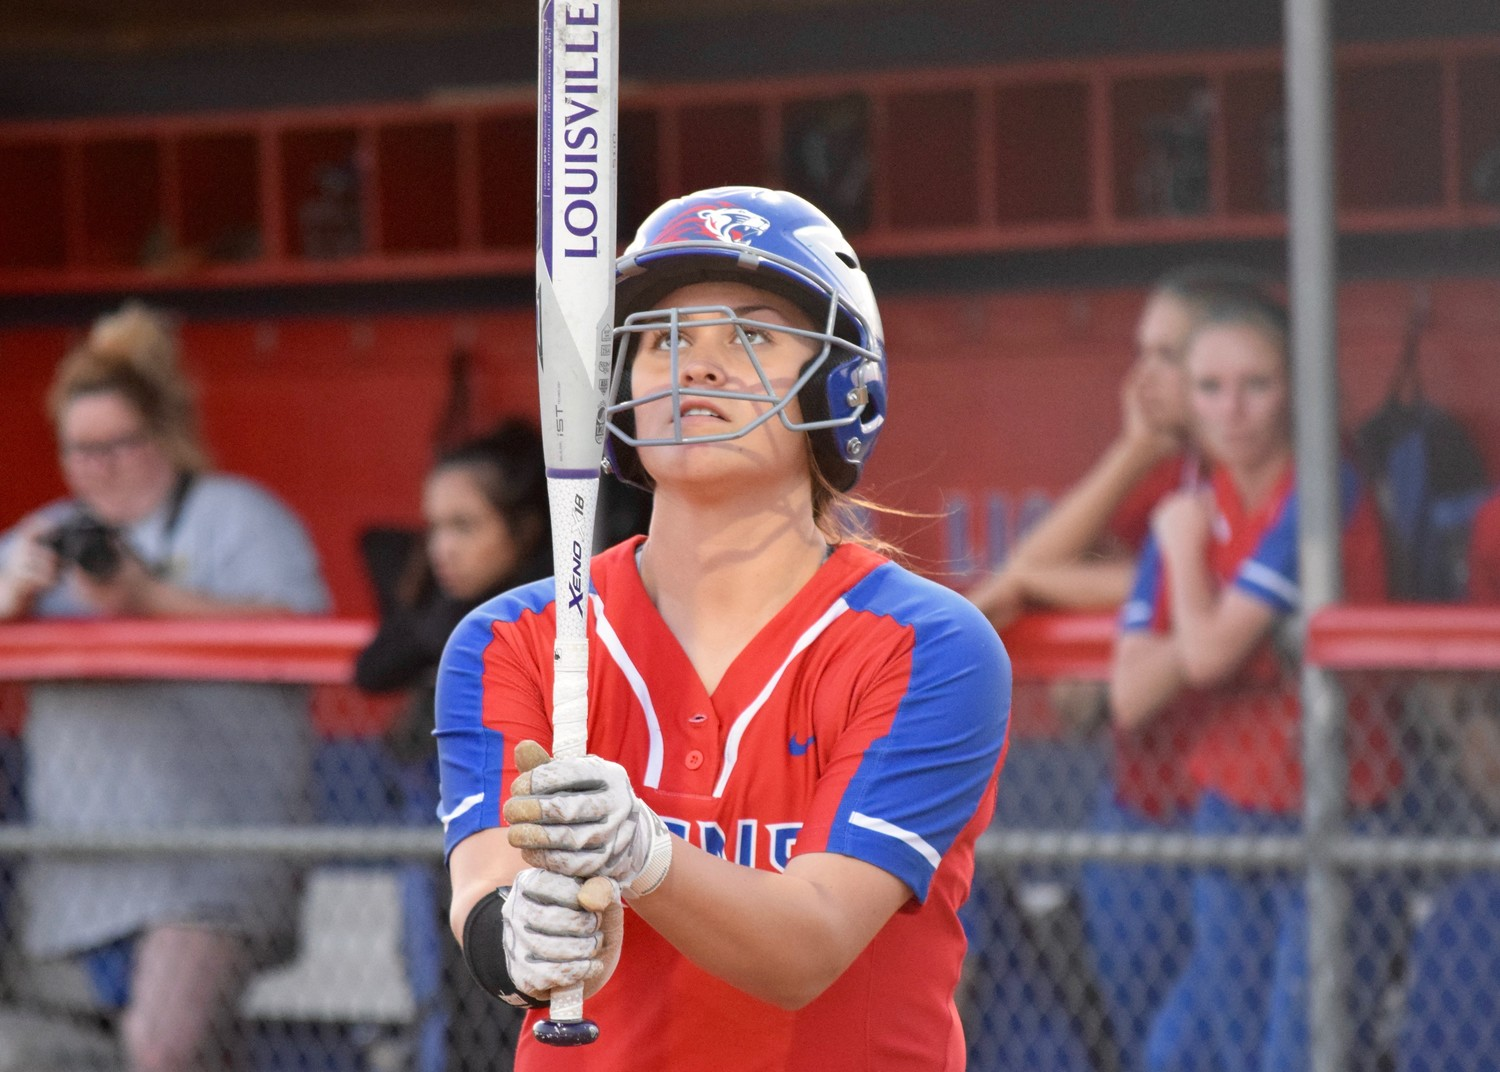 Baylea Brandon had three RBIs and scored two runs and Leander beat Westlake 8-5 on Tuesday night to clinch a spot in the postseason.